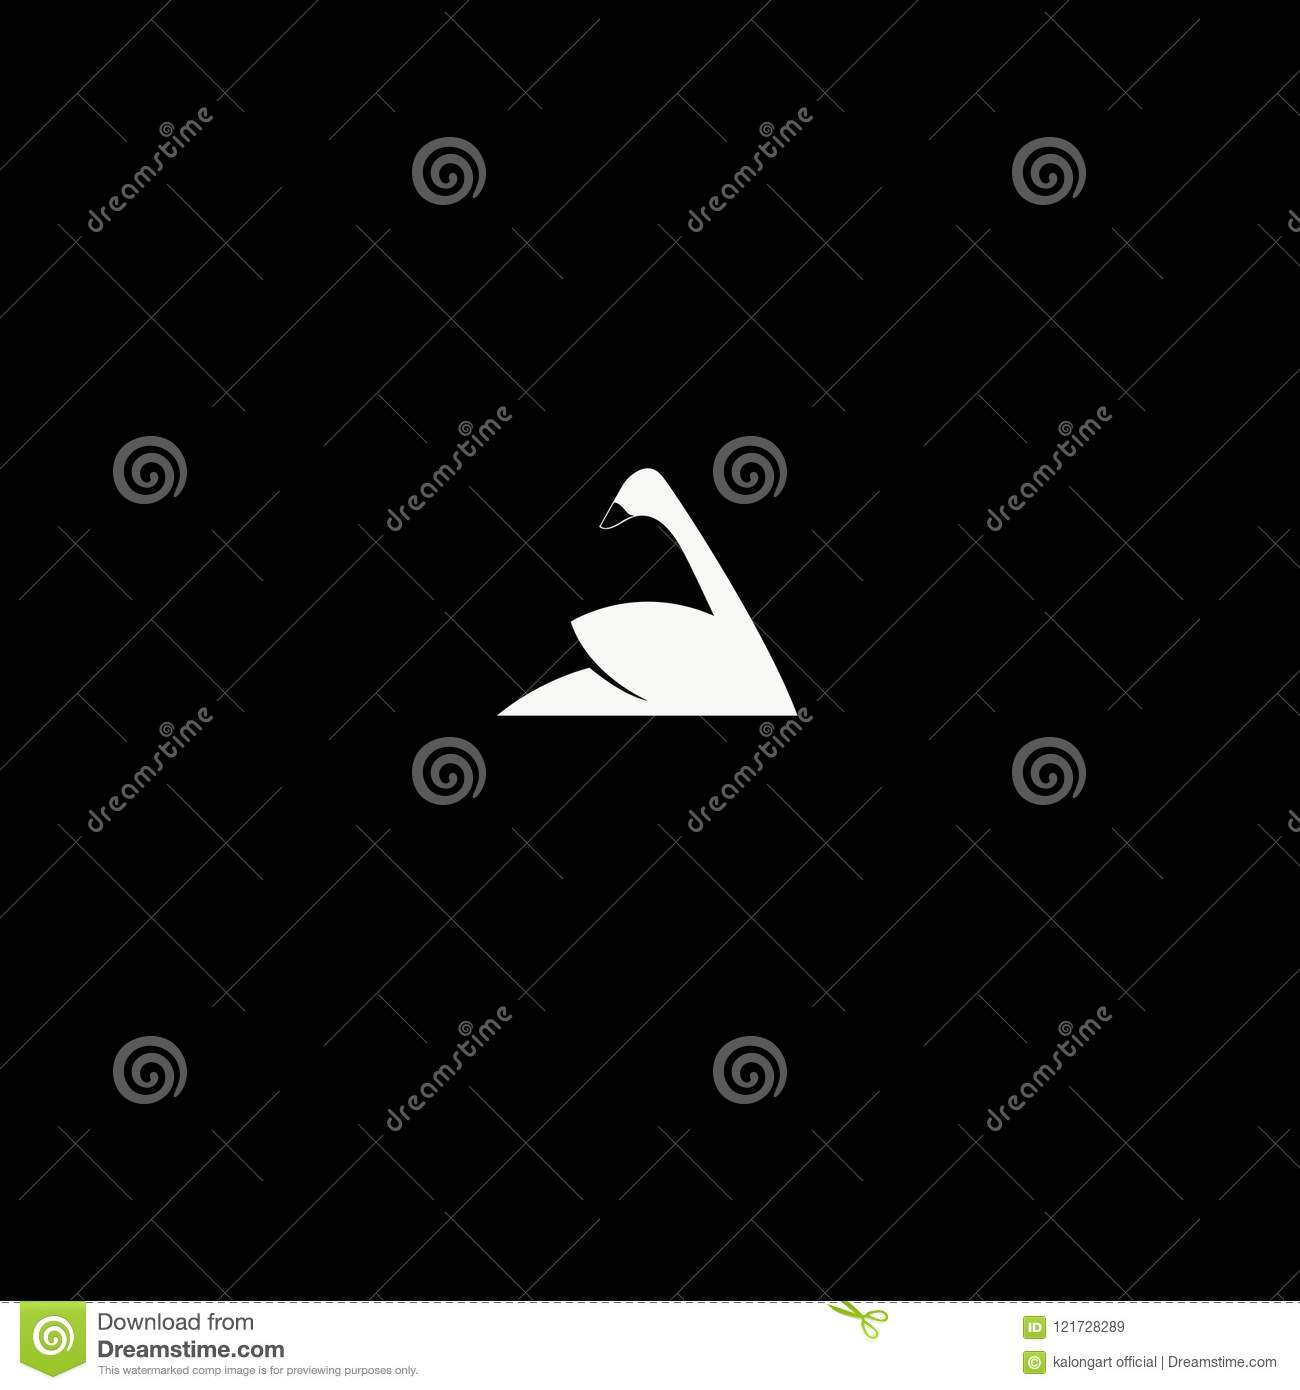 swan logo , icon vector ilustration .template. vector. editable.A